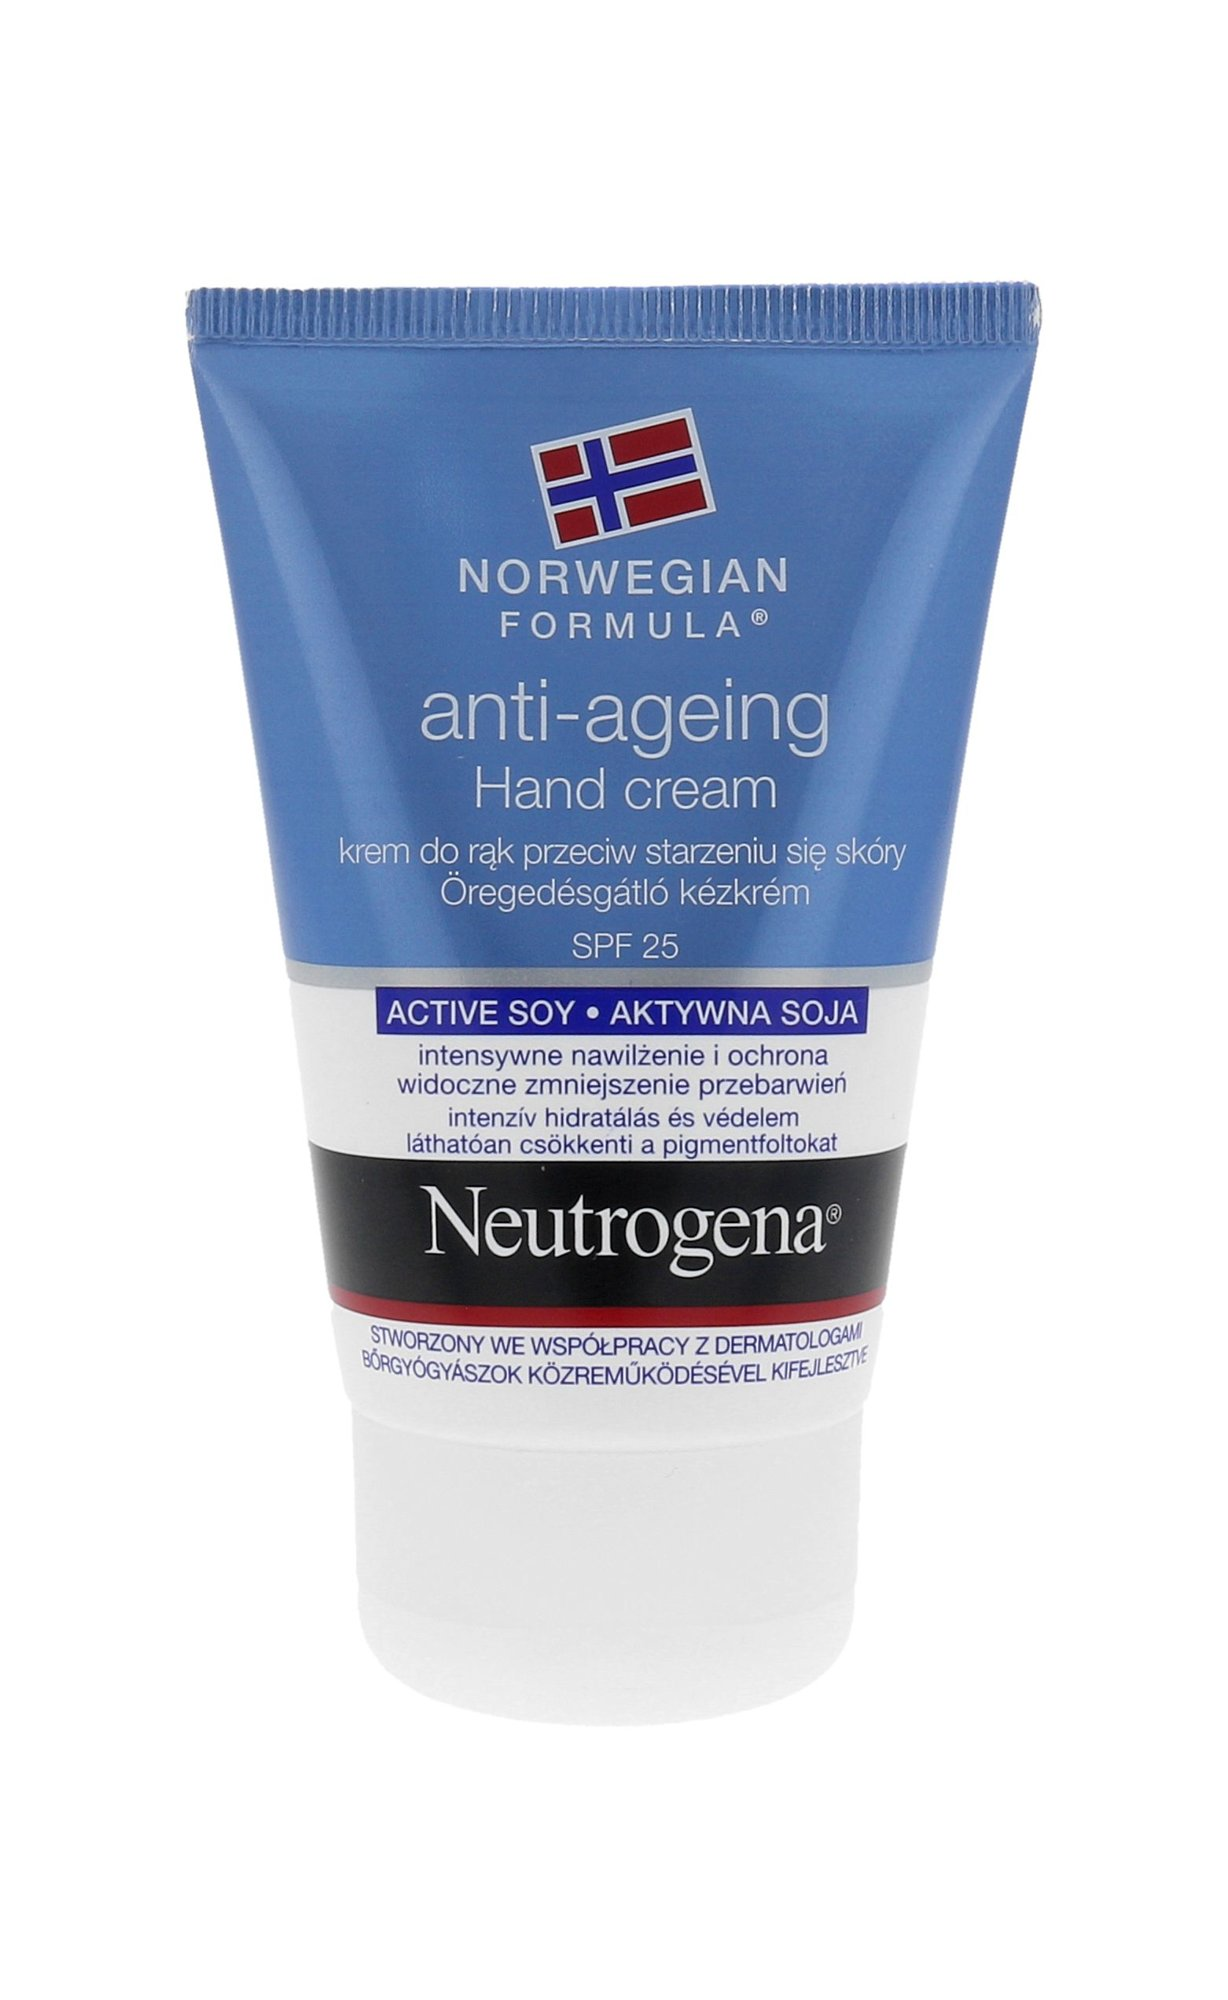 Neutrogena Norwegian Formula Cosmetic 50ml  Anti-Aging